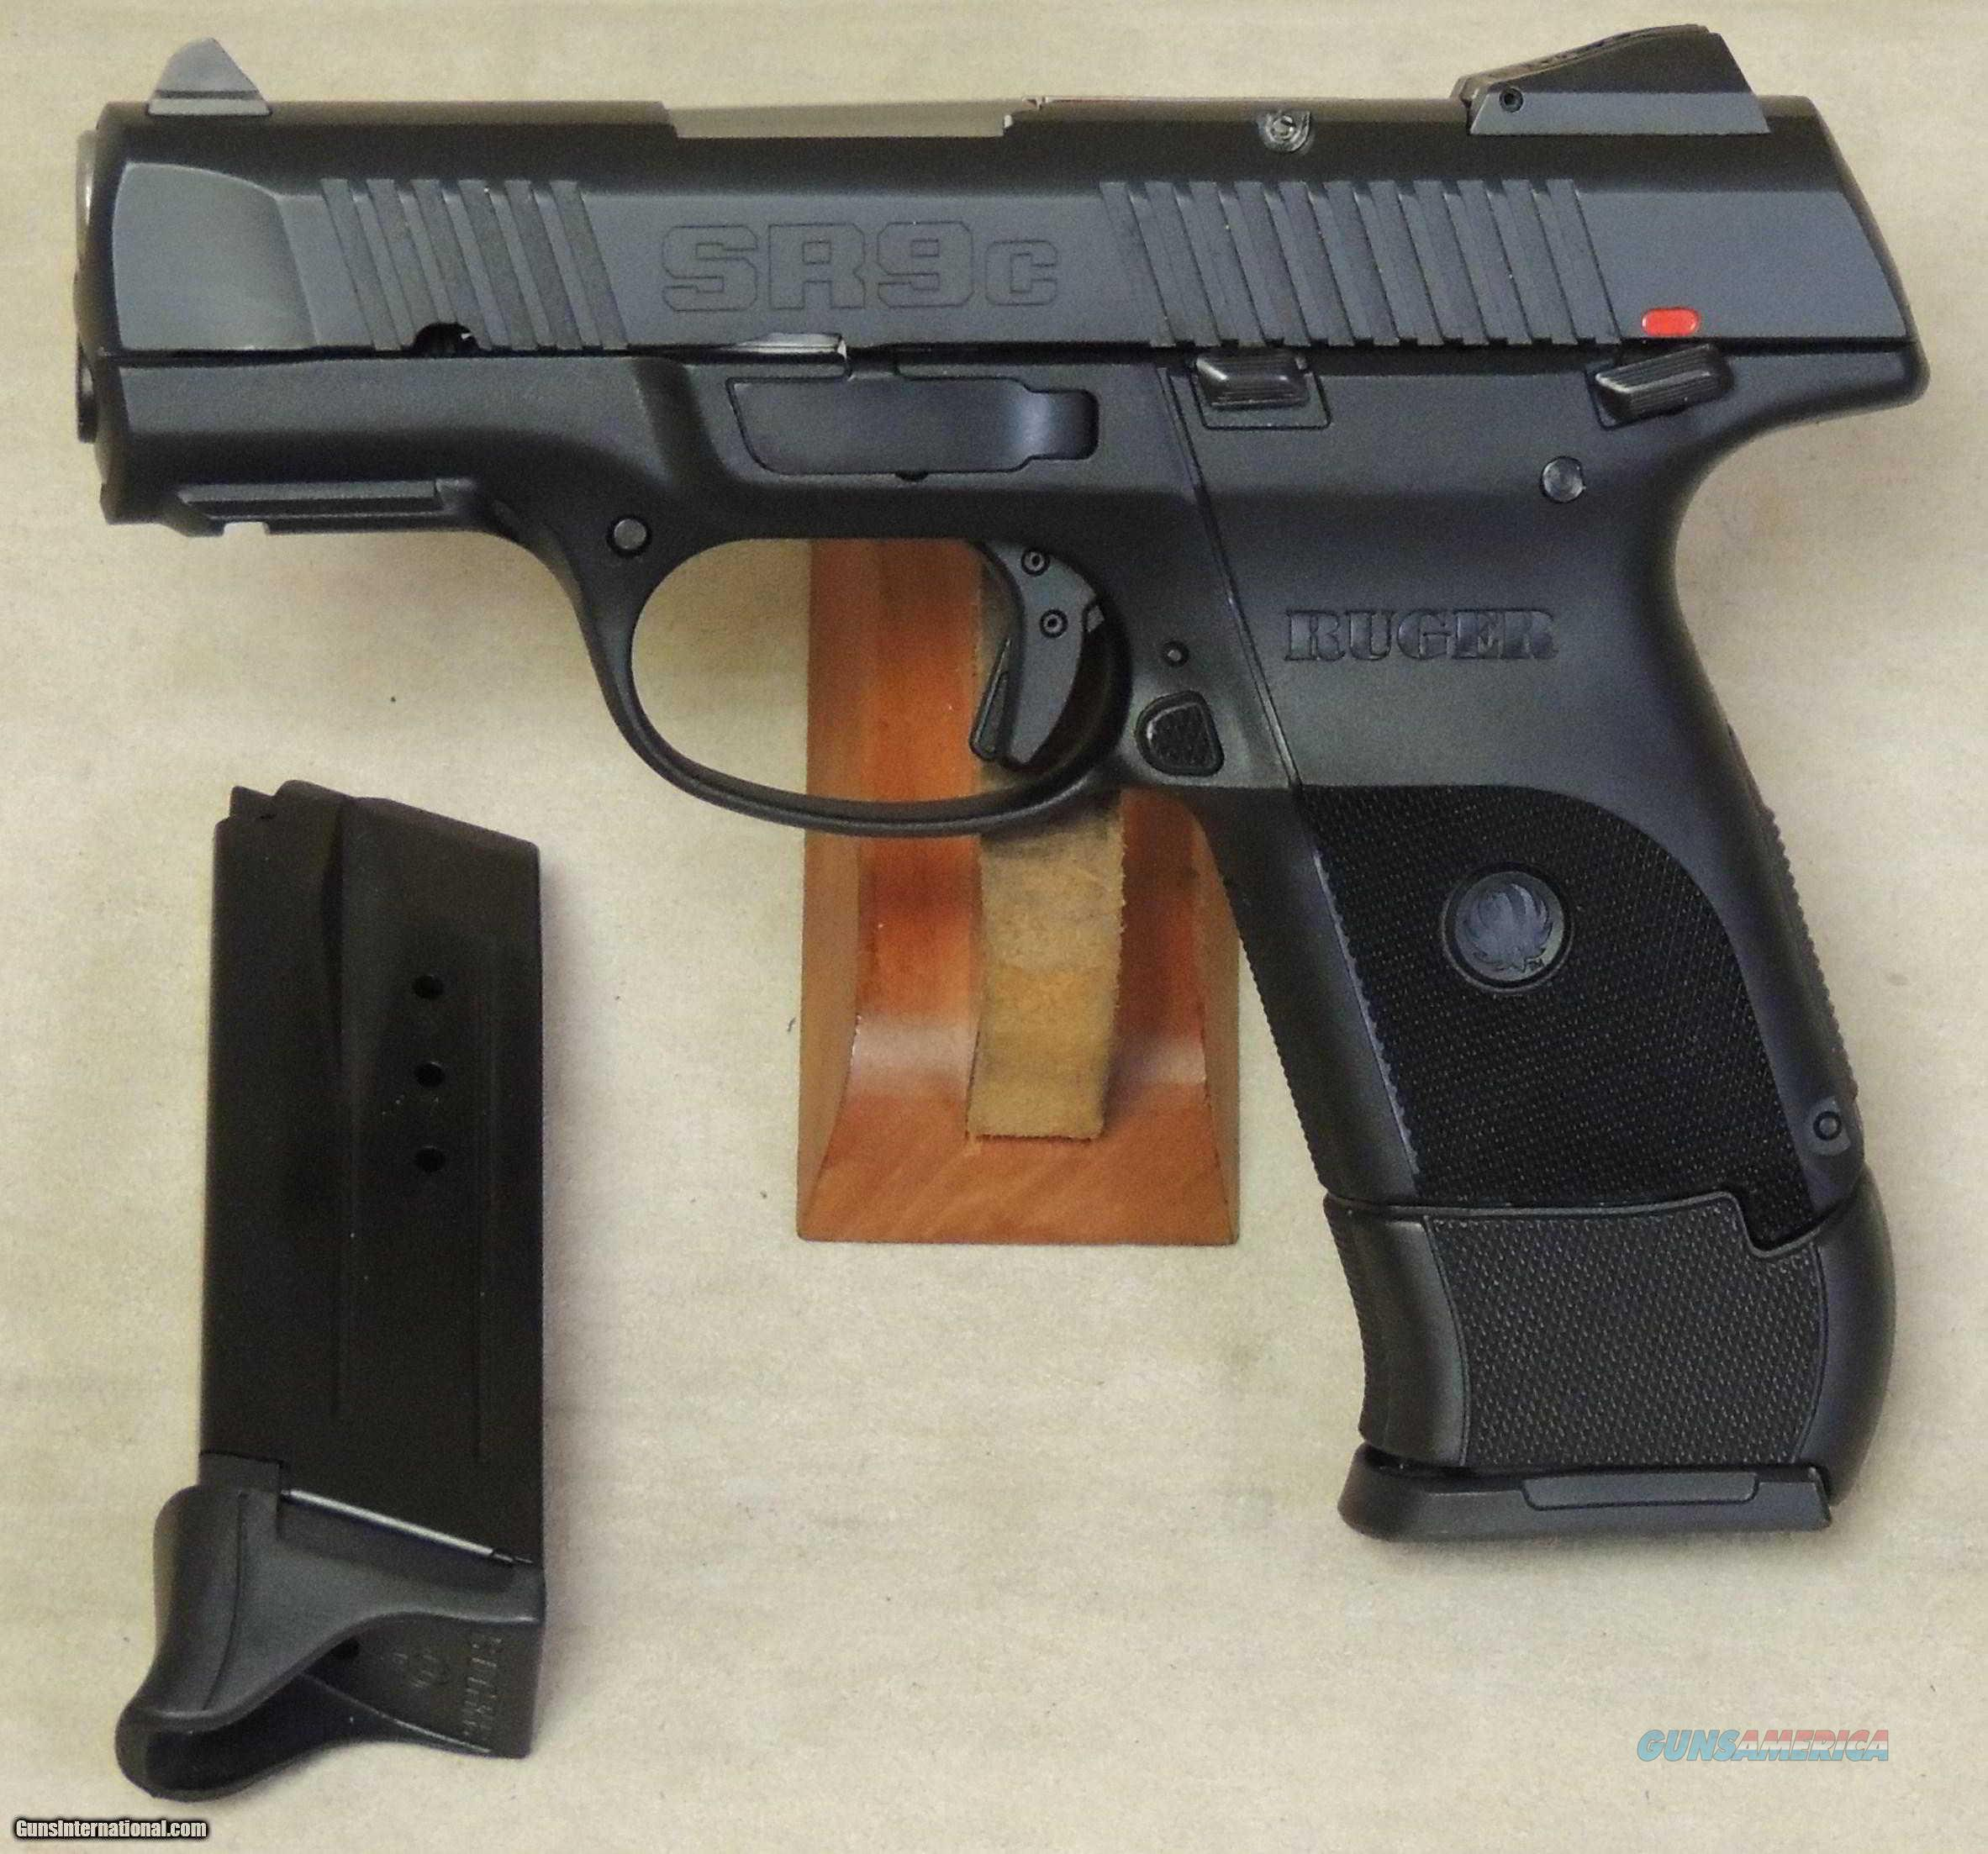 "Ruger SR9C Compact 3314 9mm 17+1/10+1 Mags Thumb Safety ""NO CREDIT CARD FEE"" *New in Box*  Guns > Pistols > Ruger Semi-Auto Pistols > SR Family > SR9C"